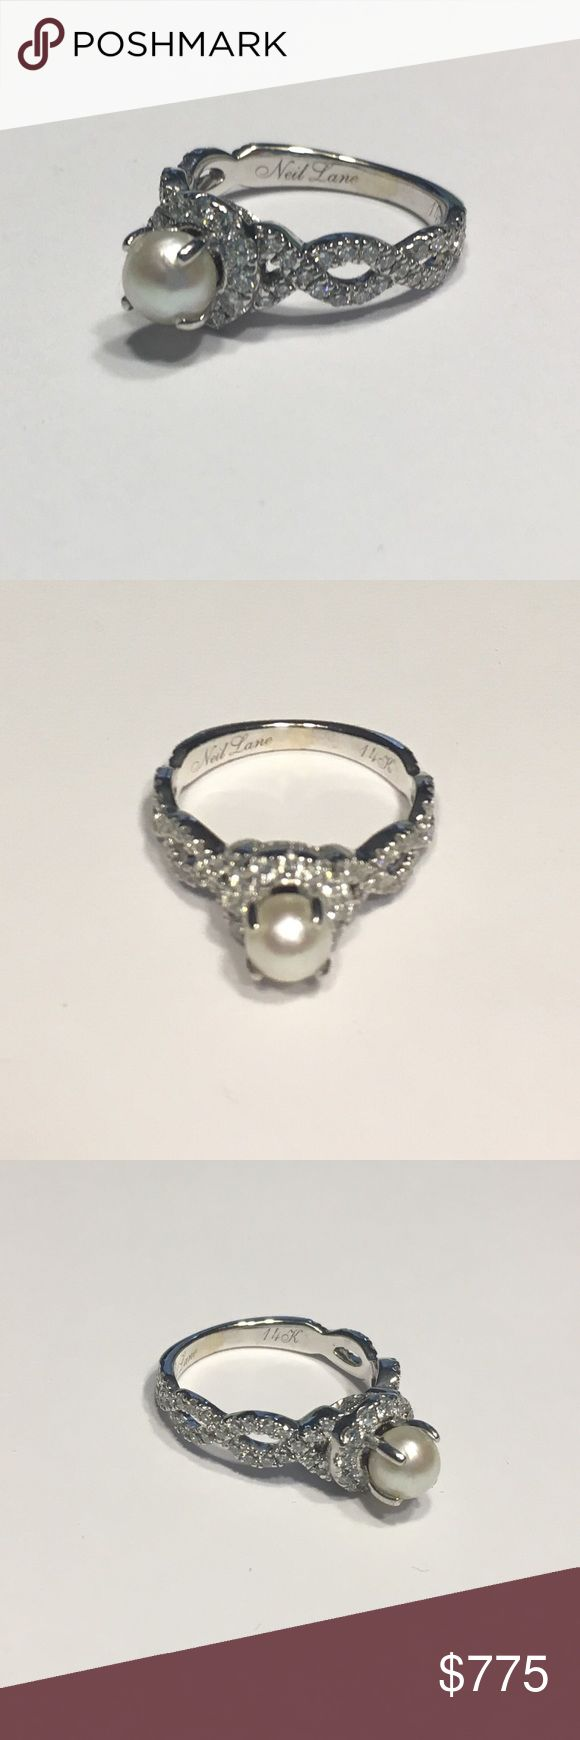 Neil Lane Diamond Pearl Engagement Ring Hello, This Is A Stunning Neil Lane  Diamond And